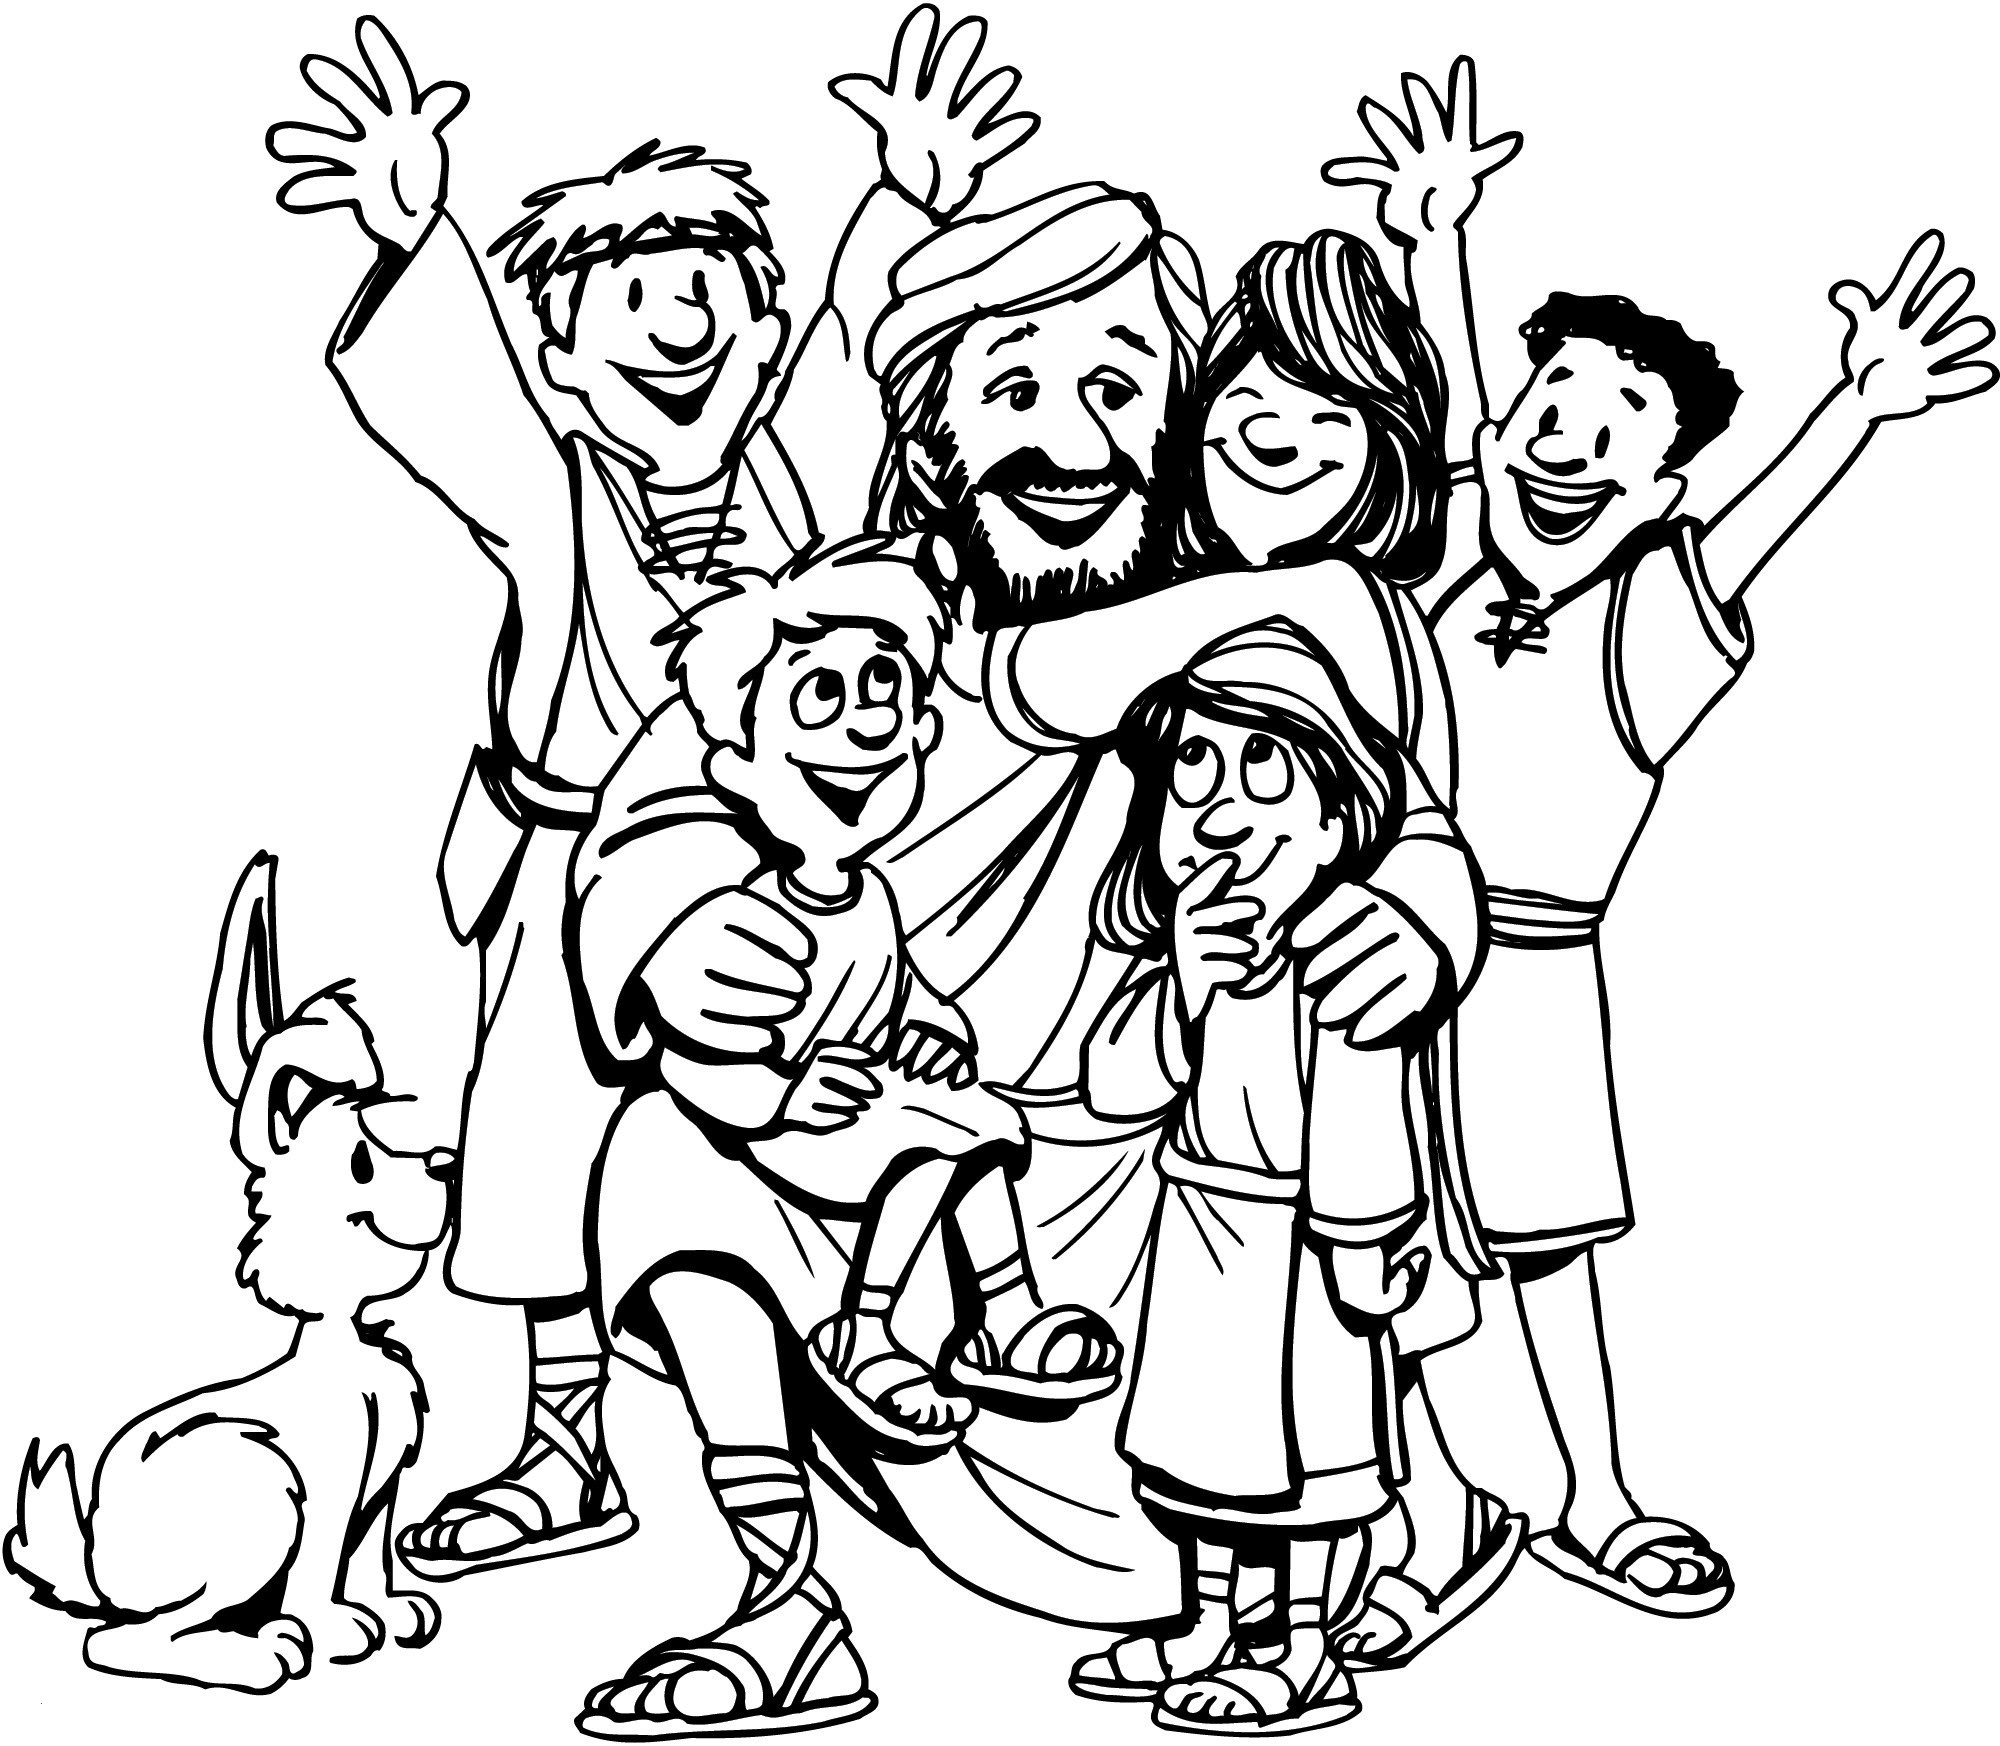 Jesus Loves Children Coloring Pages  Download 13o - Free Download